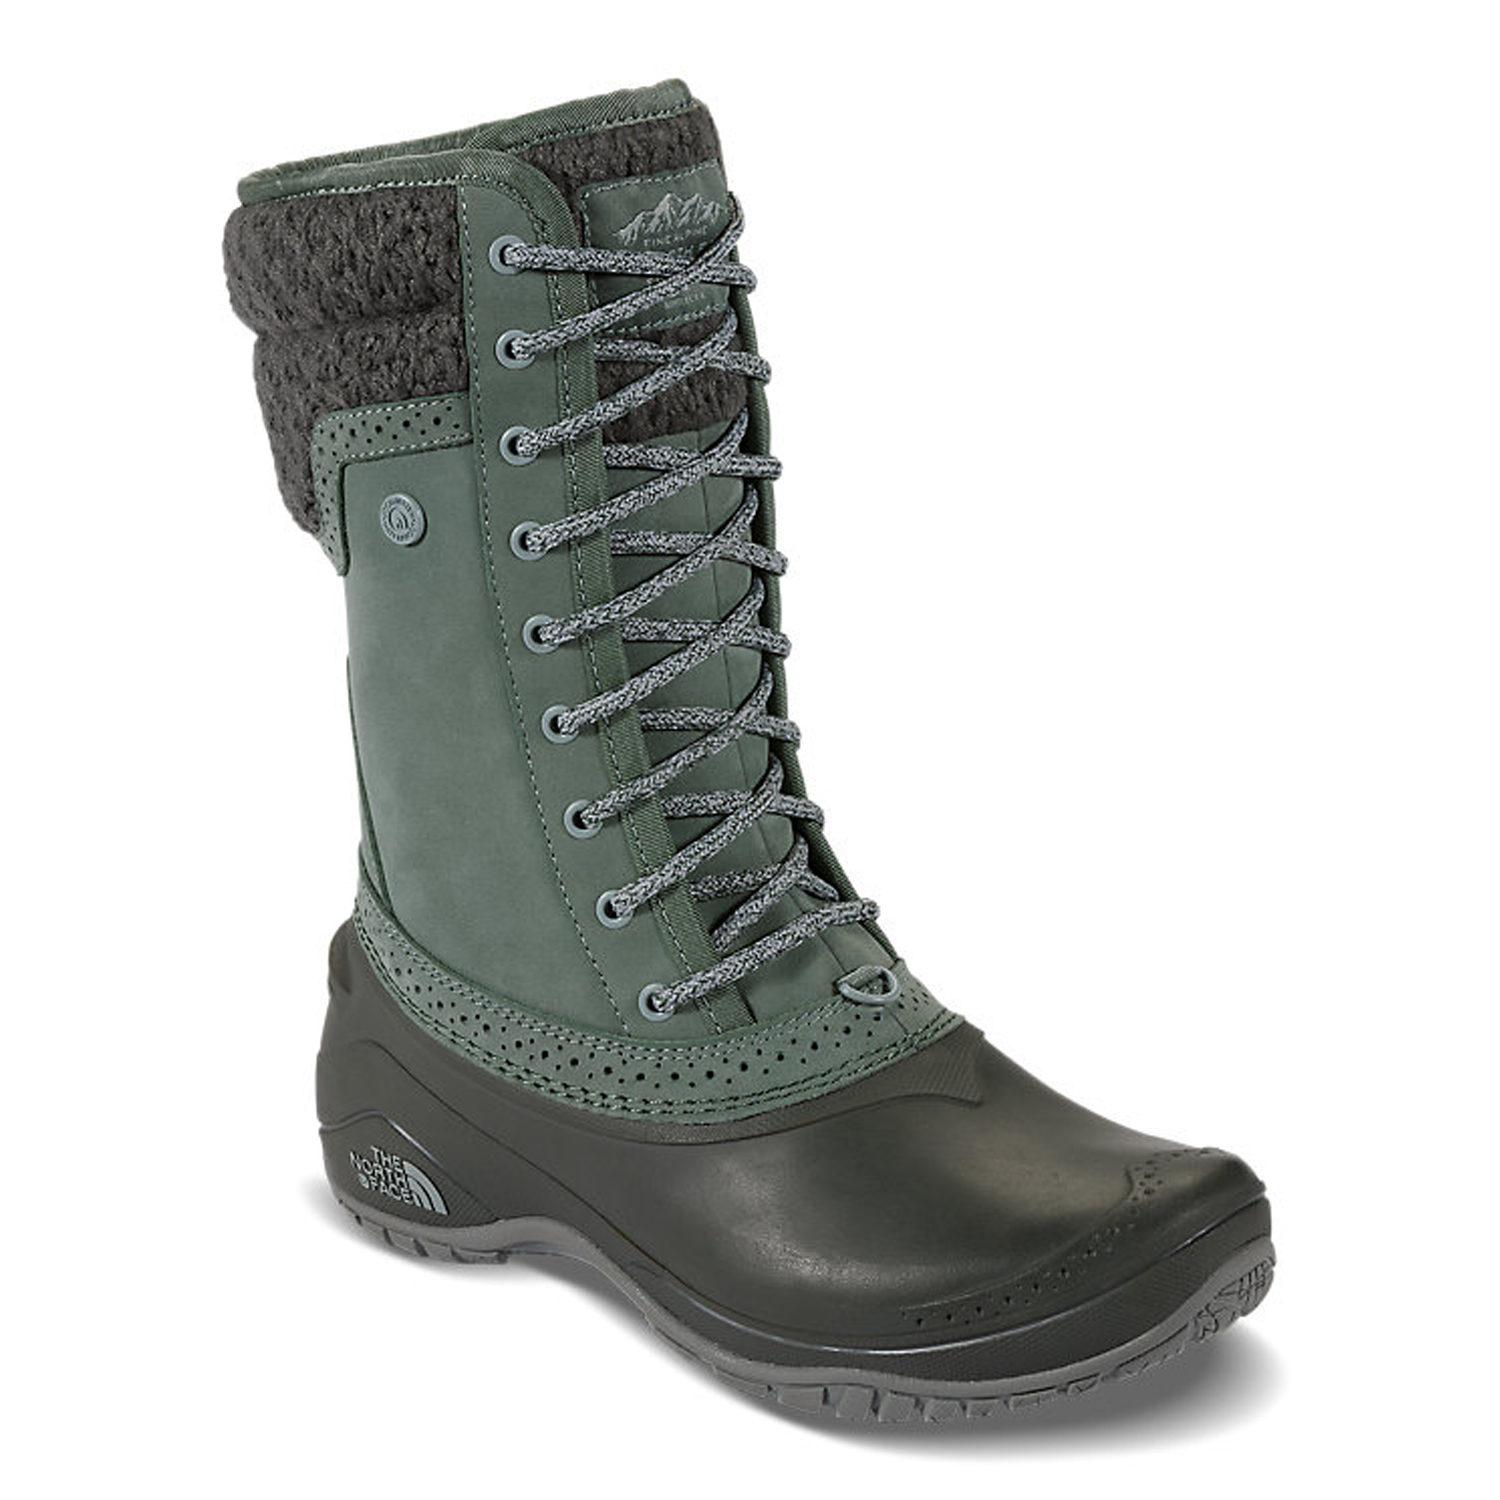 d92c38195 Details about The North Face Women's Shellista II Mid Winter Snow Boots  Green Size 5